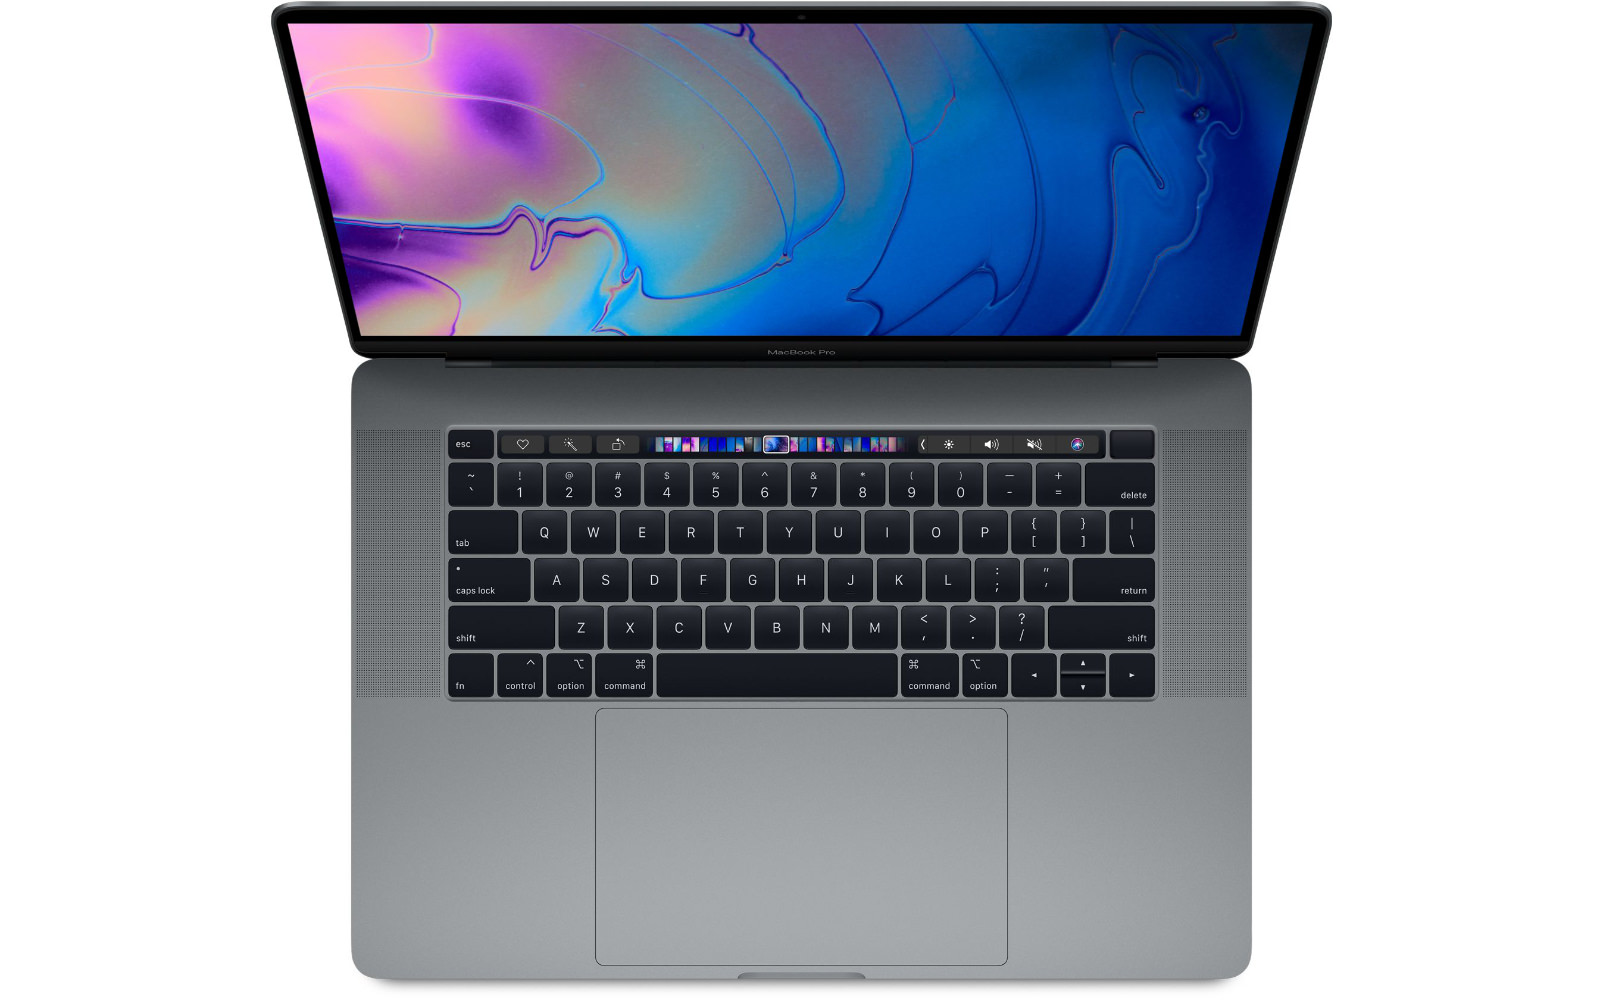 New-MacBook-Pro-16inch-image-with-esc-key